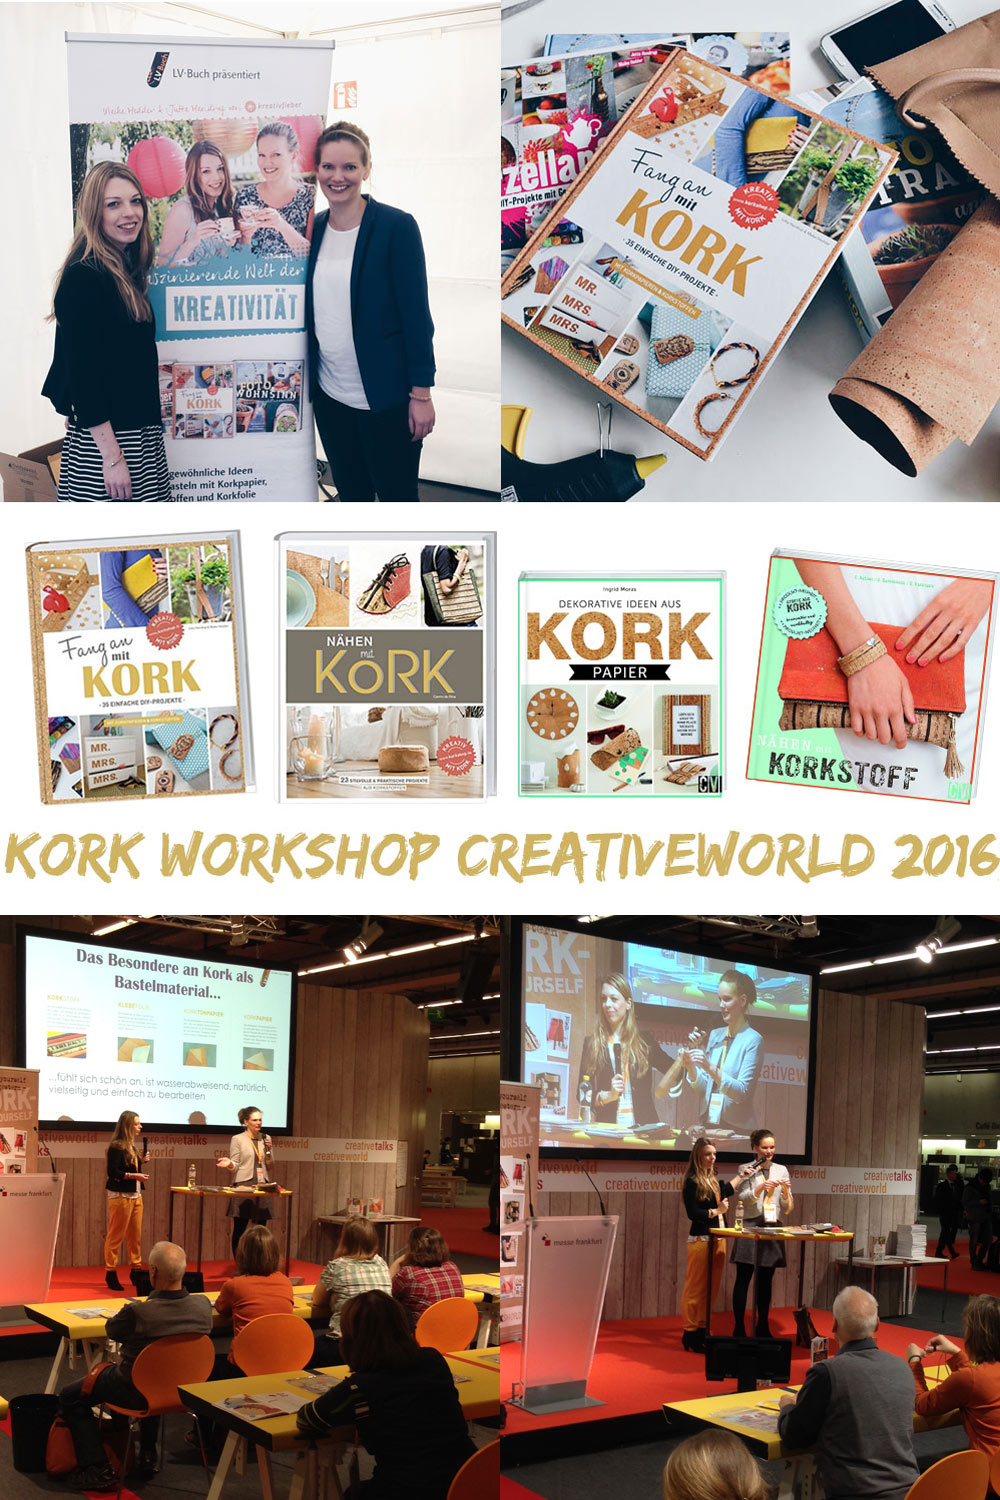 Kork-Creative-Impulse-Award-Creativeworld-2016---Kork-als-DIY-Trend